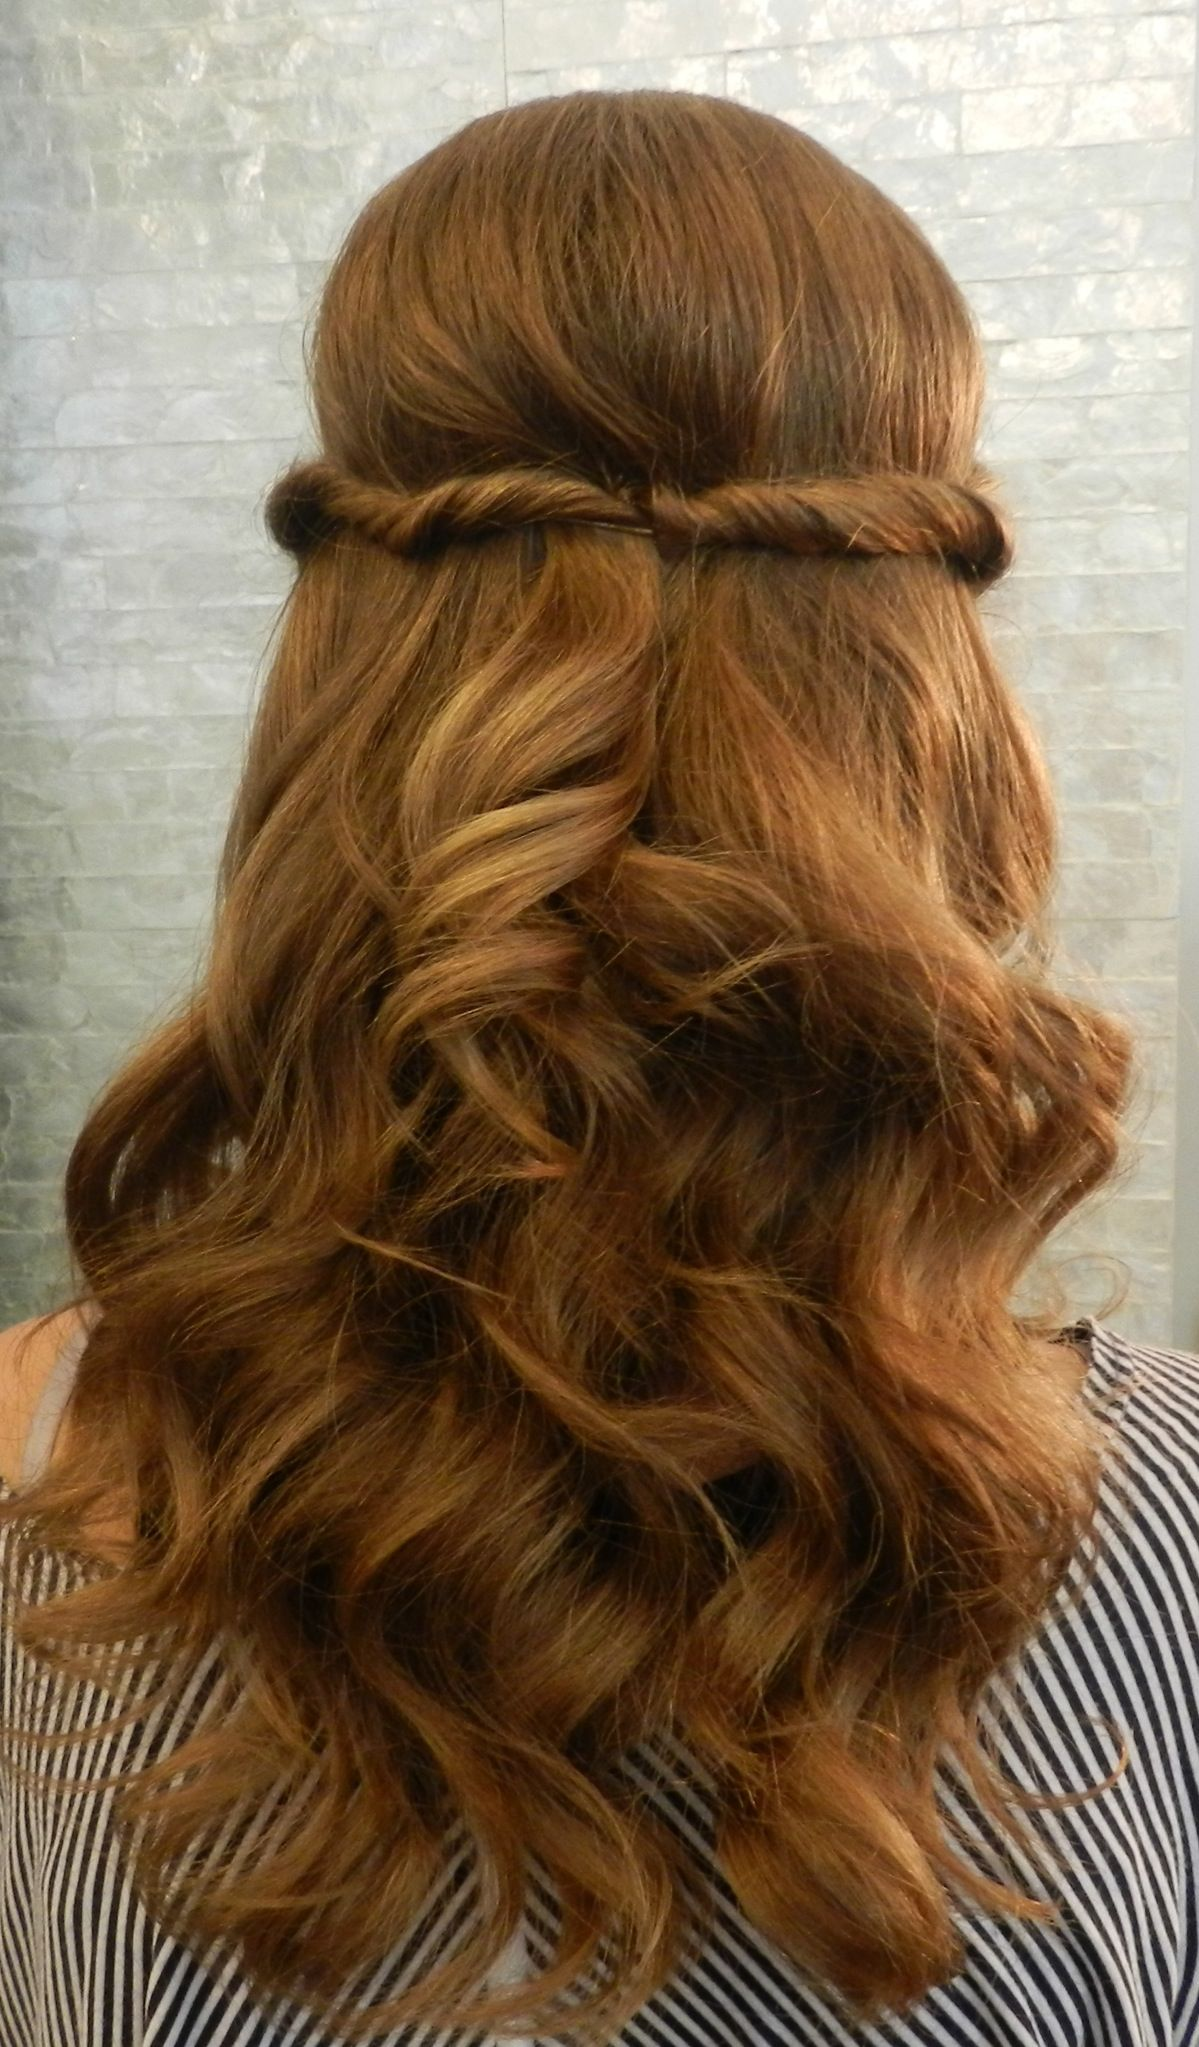 8th grade graduation hair, so cute! half up updo. - by tina